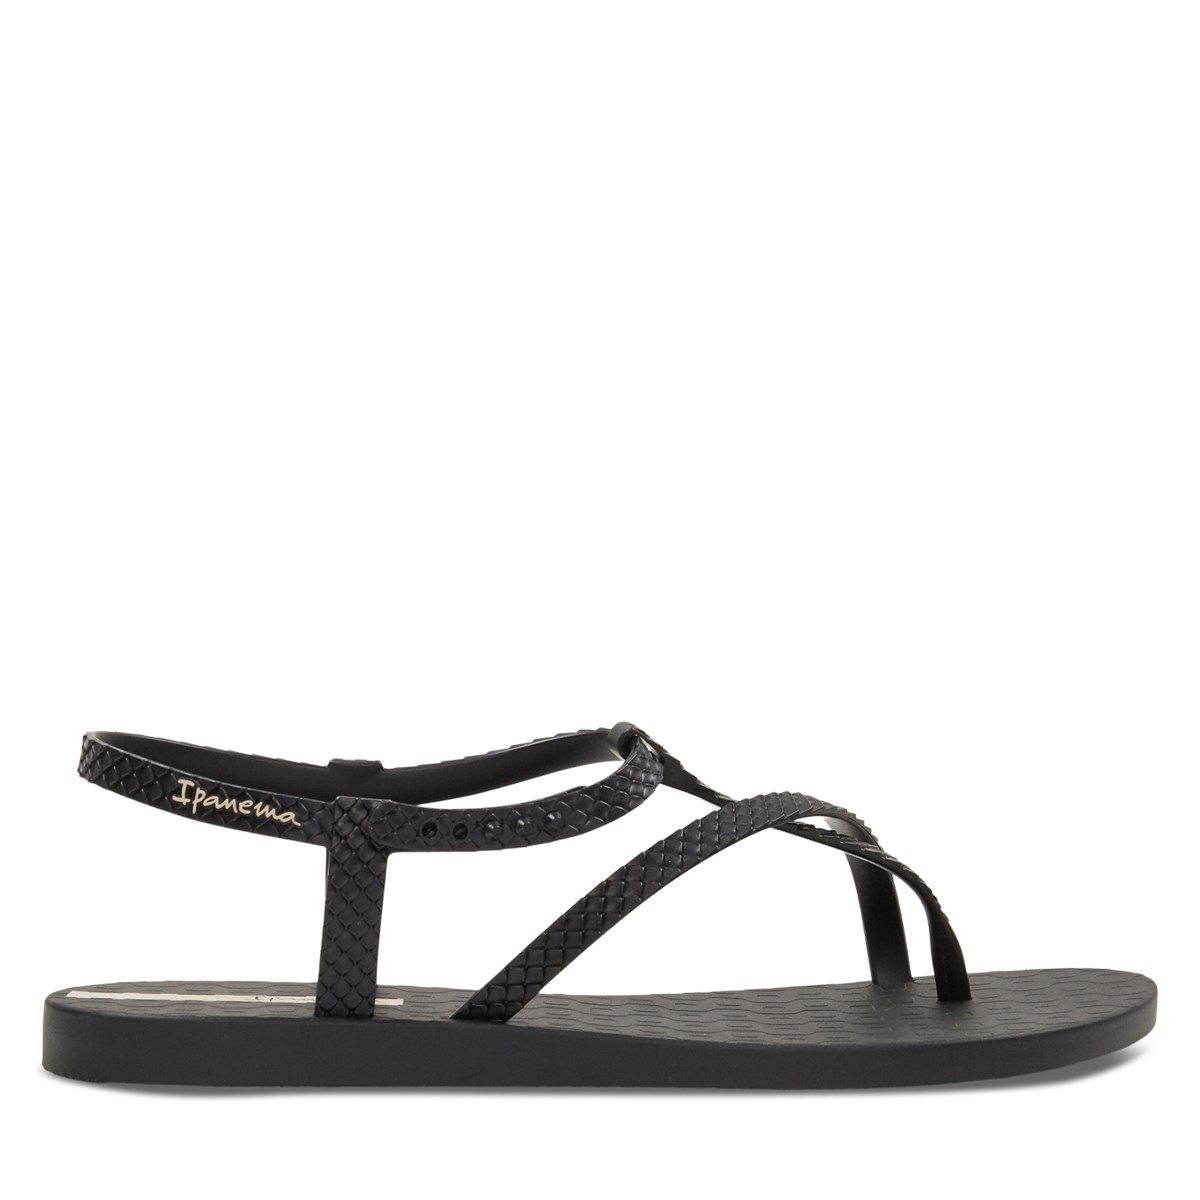 Women's Aphrodite Sandals in Black